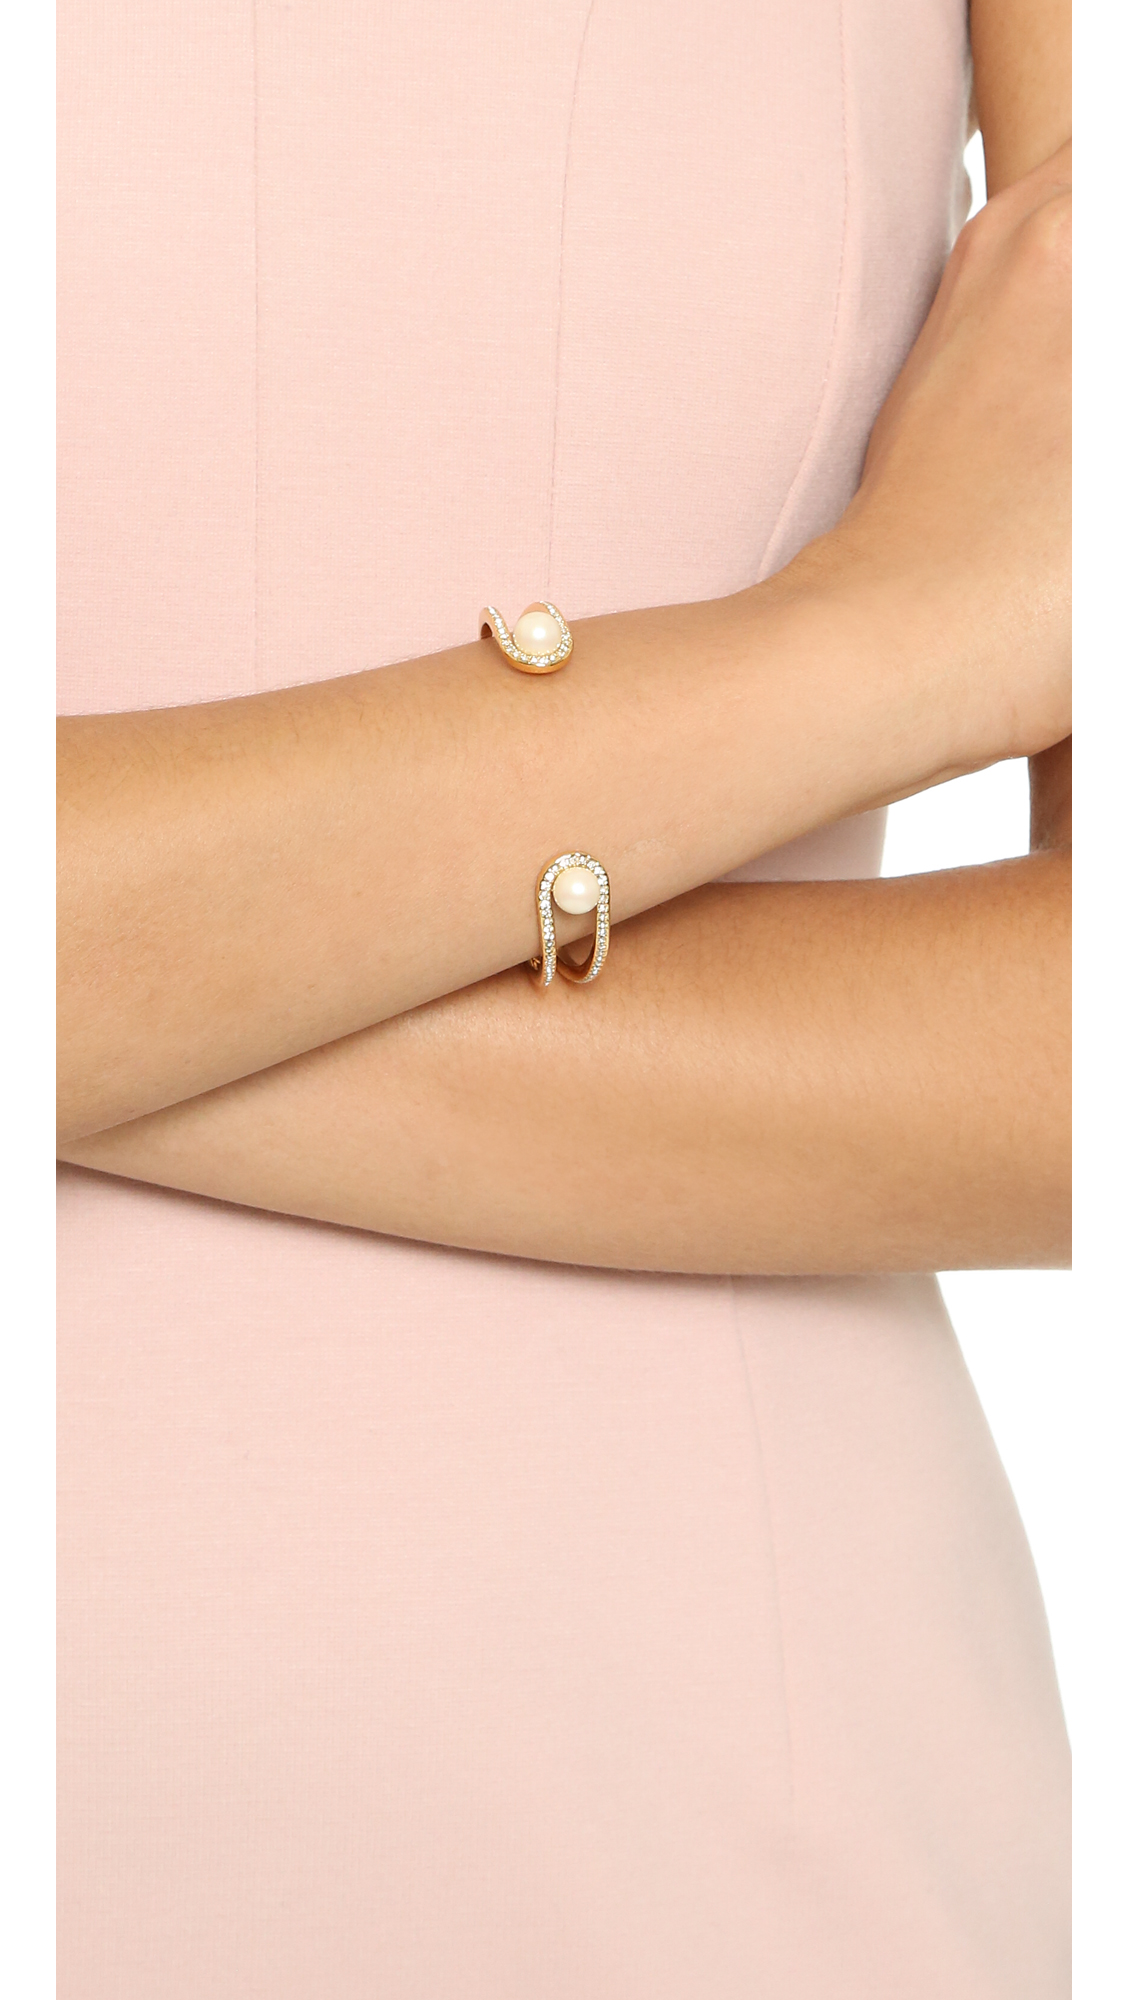 Kate Spade New York Purely Pearly Cuff Bracelet | SHOPBOP